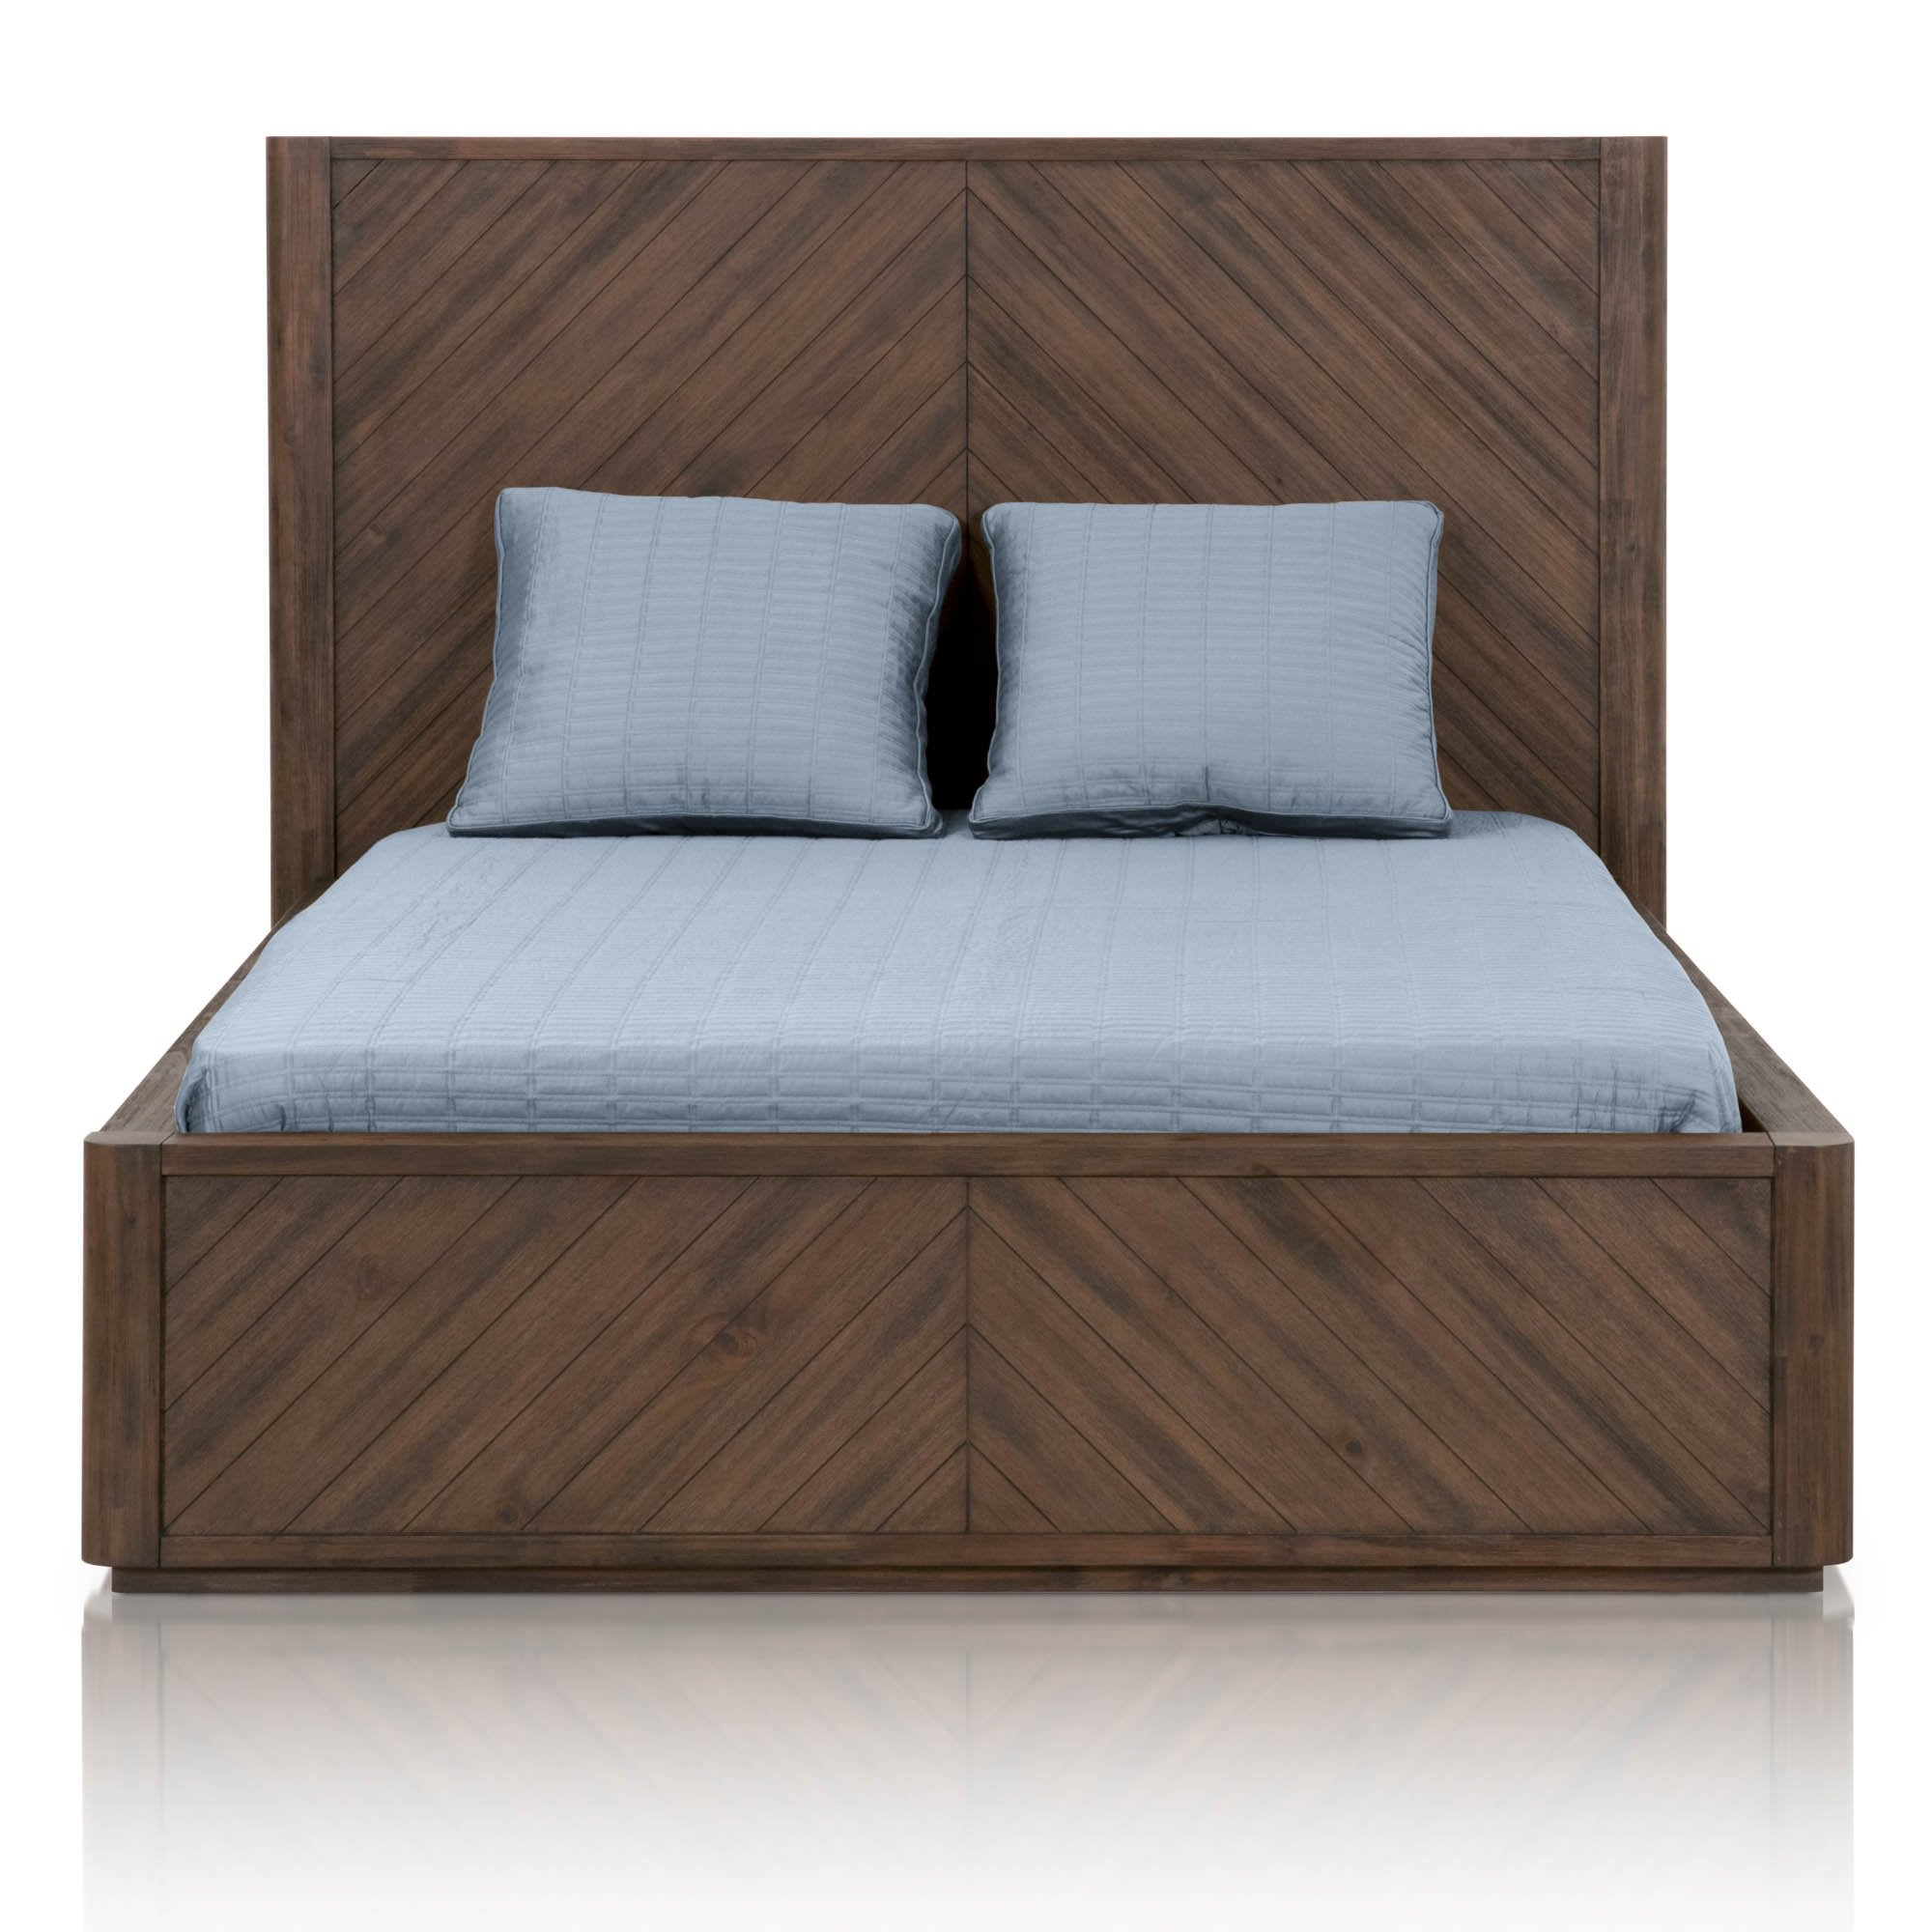 Apex Queen Bed